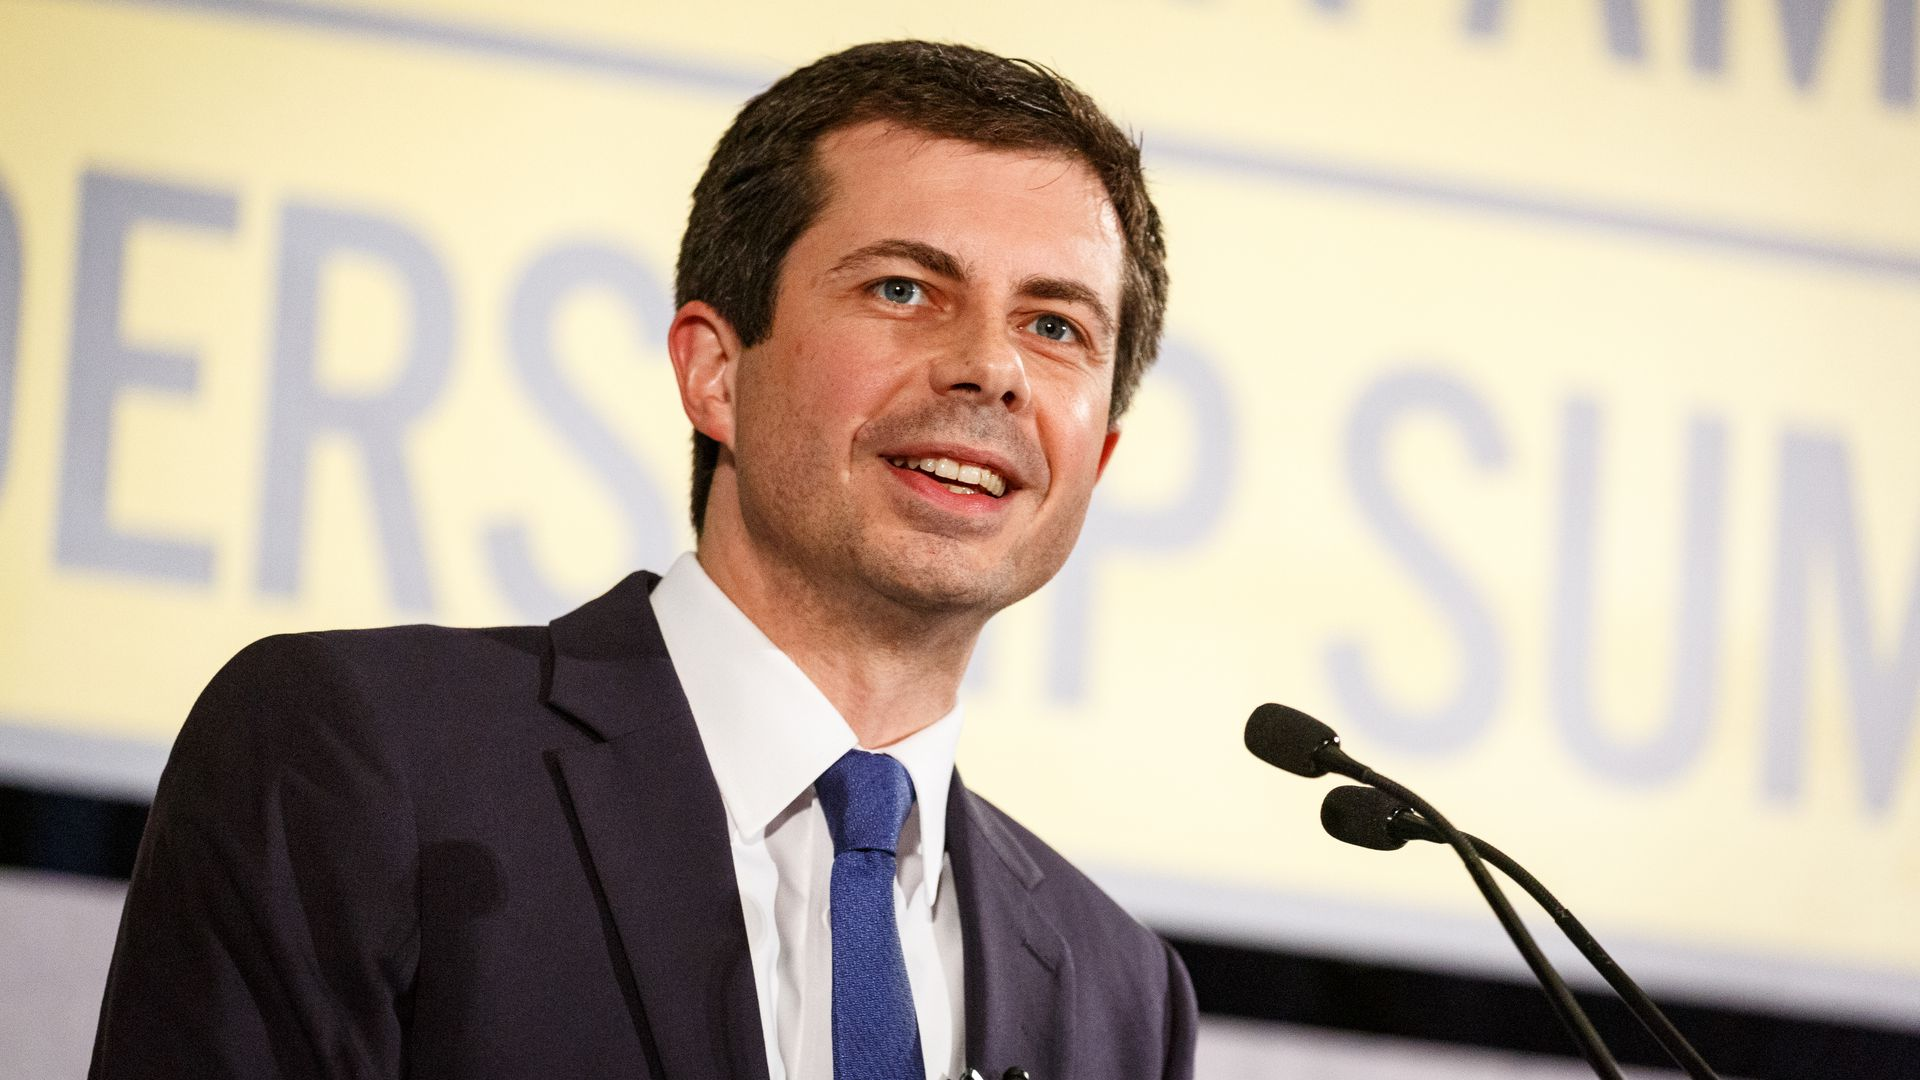 With $7 million raised in April, Pete Buttigieg backs his polling surge with big fundraising